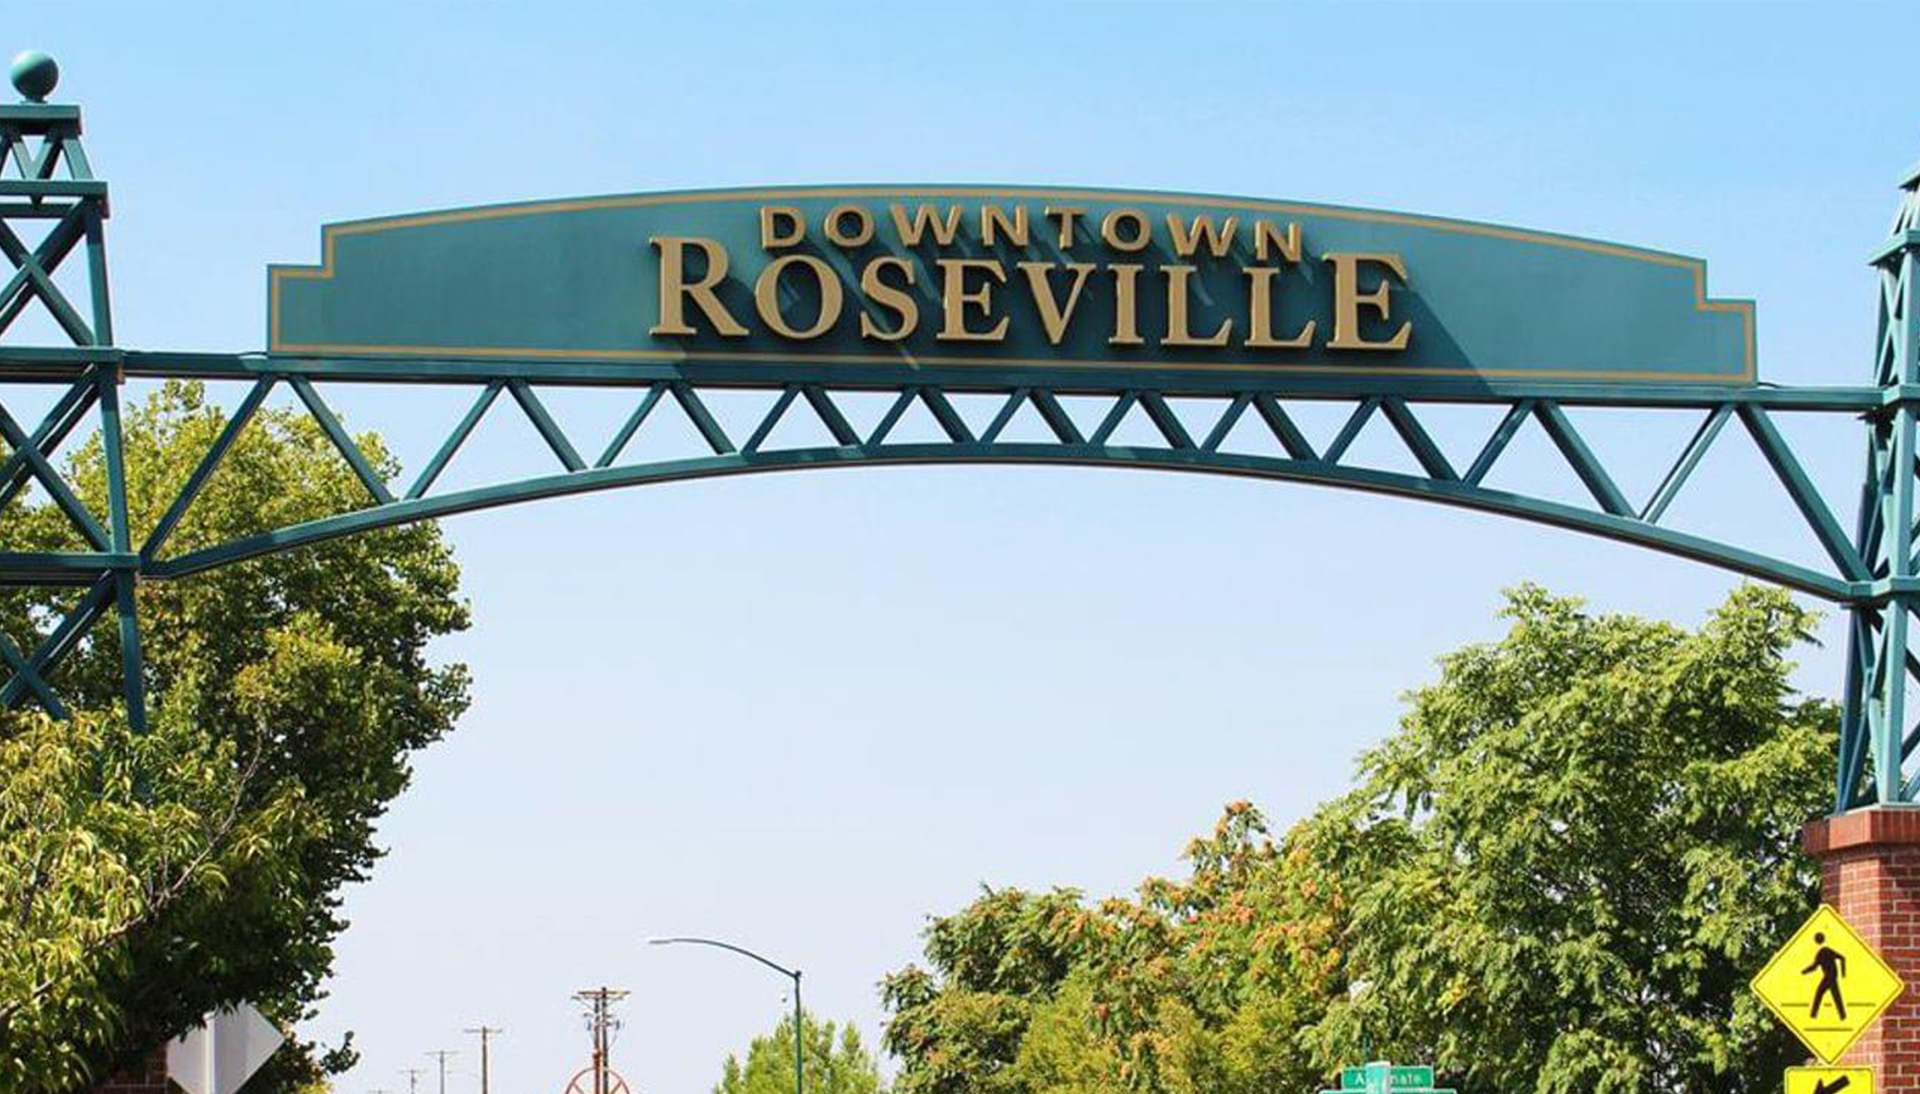 Downtown Roseville sign